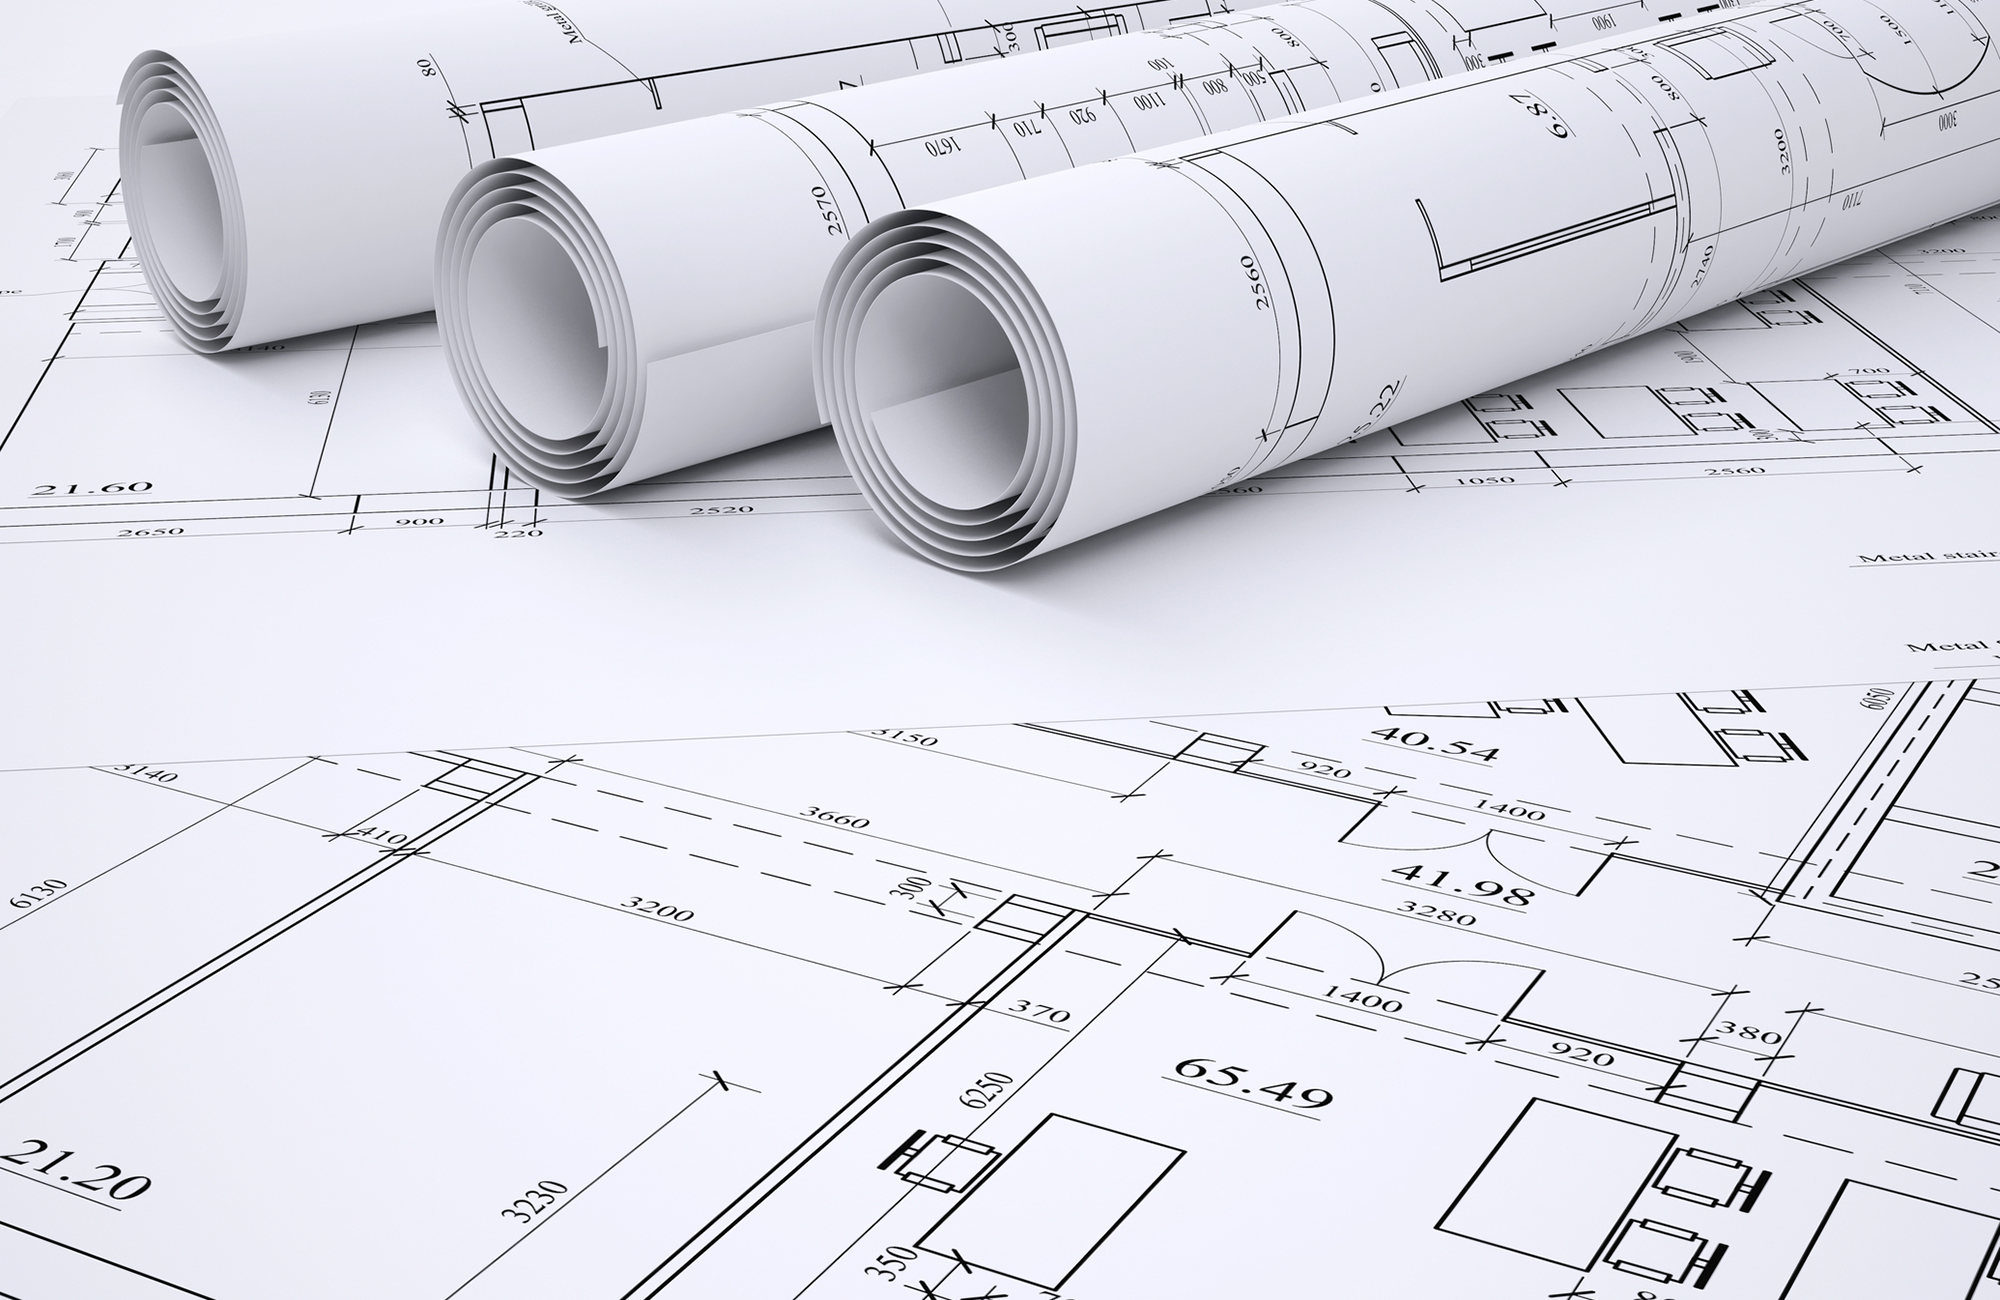 Architecture Drawings - Stock Image - Web.jpg